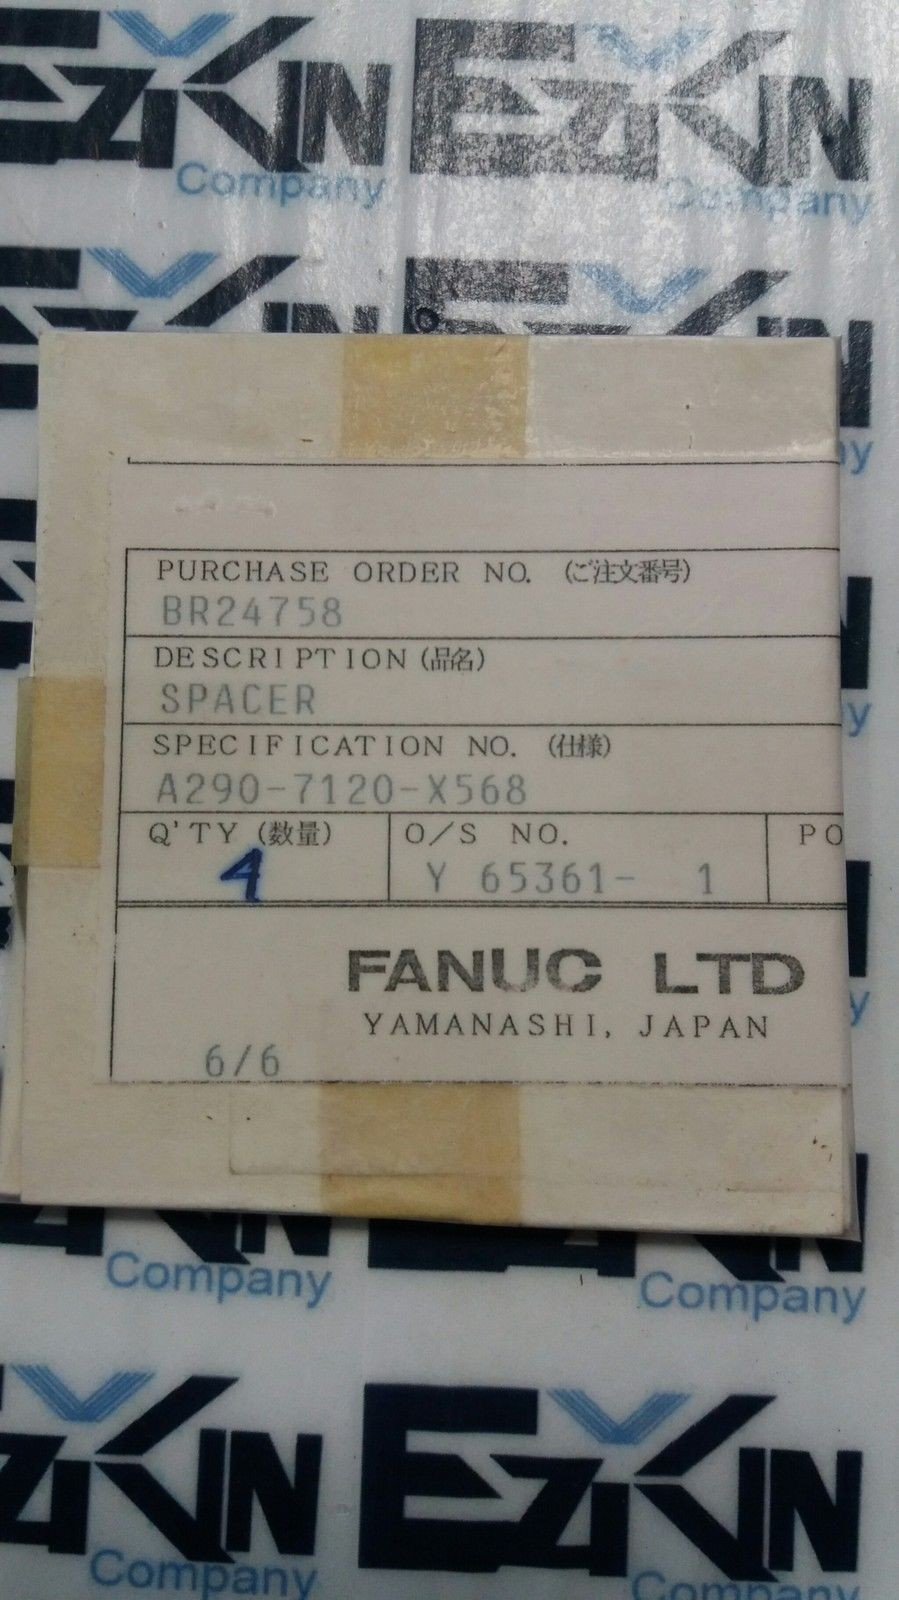 FANUC A290-7120-x568 SPACER LOT#4